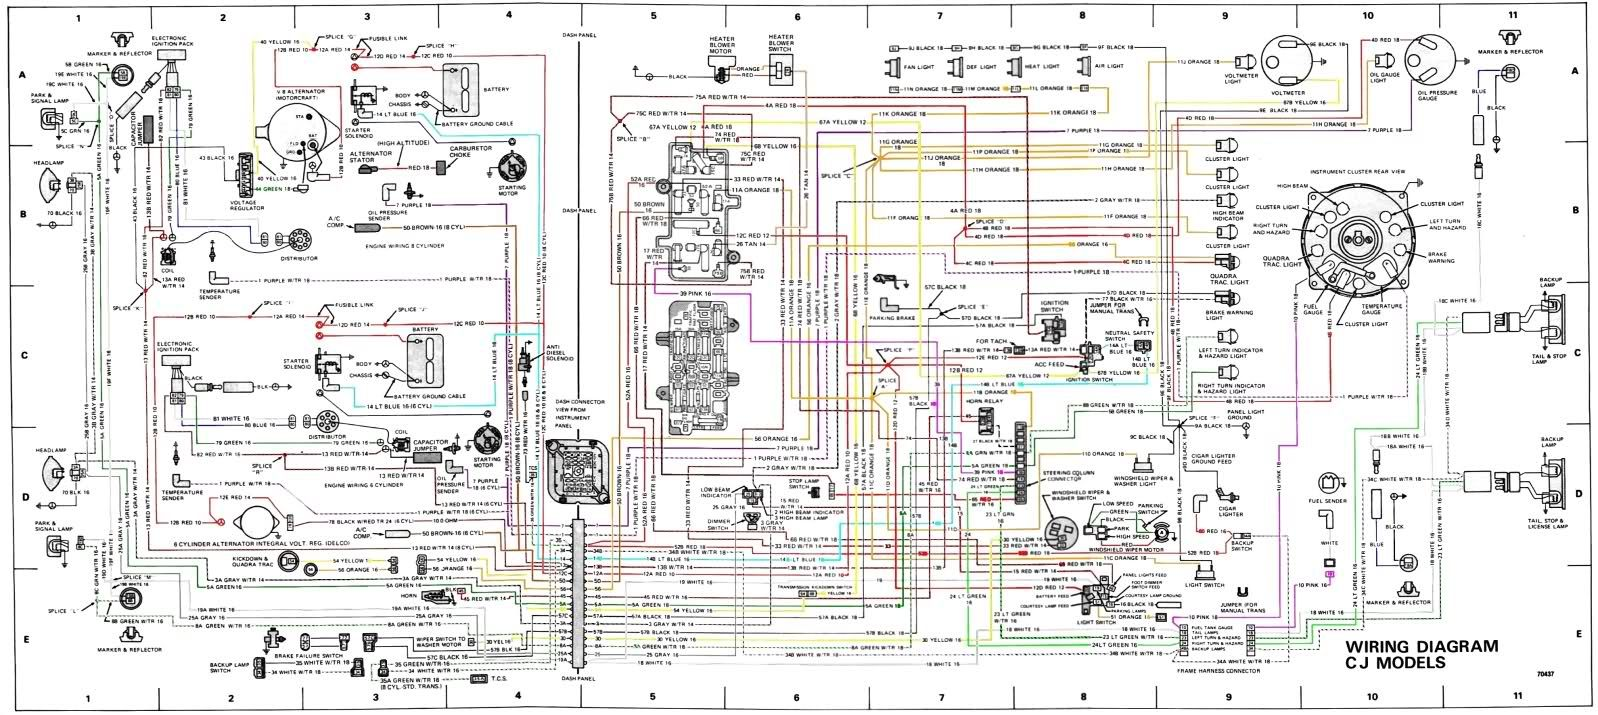 cj7 wiring harness wiring diagram bulk head wiring diagram 1980 jeep cj7 [ 1598 x 715 Pixel ]